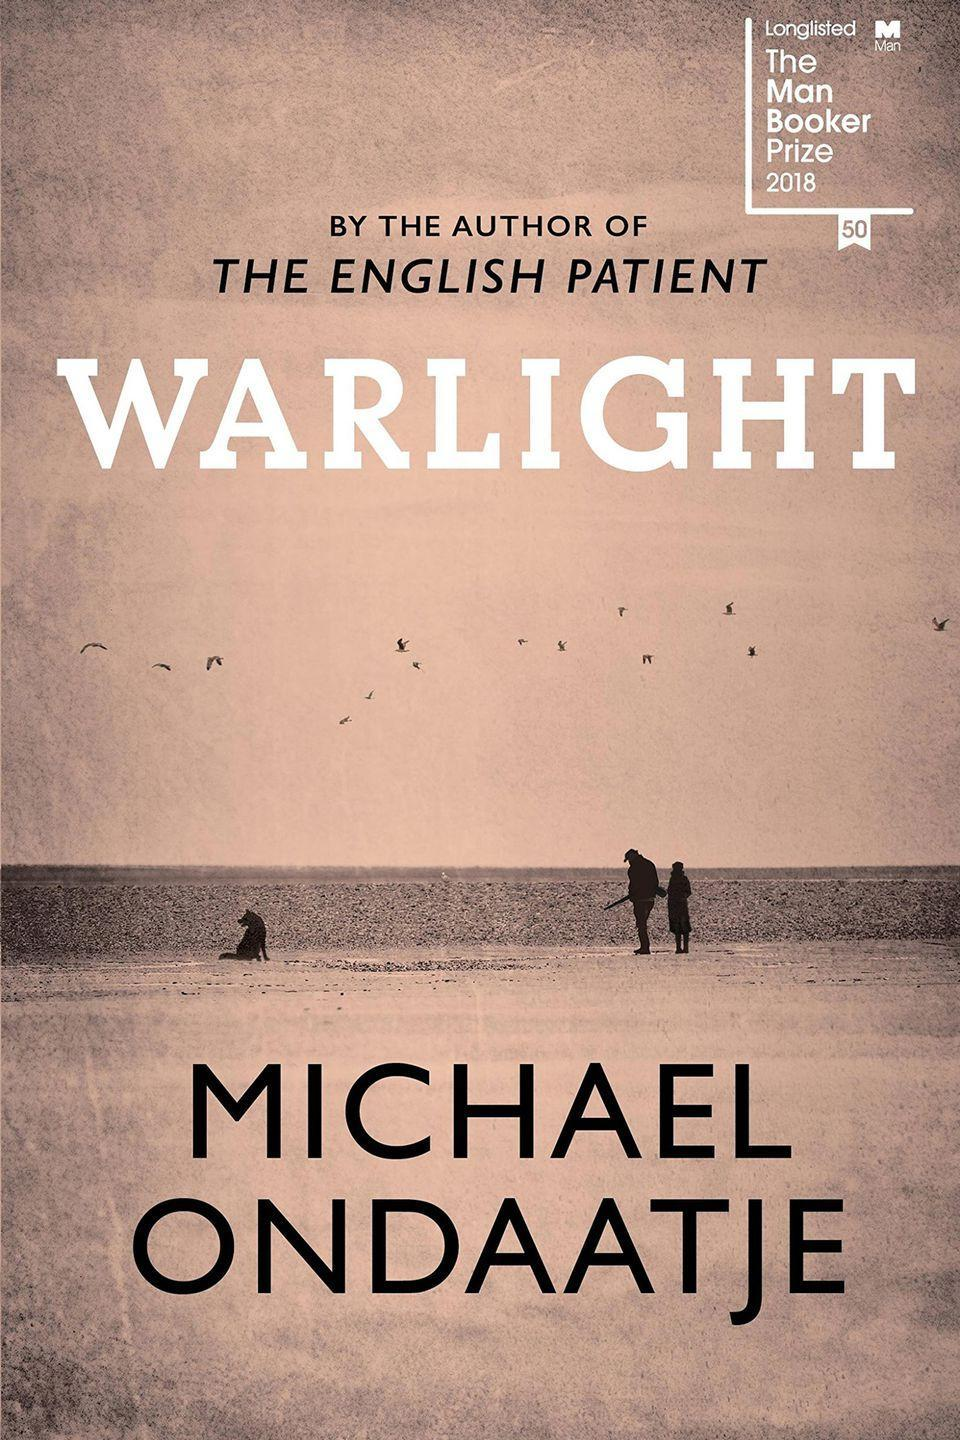 "<p><a href=""http://foyles.co.uk/witem/education/summary-of-warlight-by-michael-ondaatje,bookhabits-9781388285289"" rel=""nofollow noopener"" target=""_blank"" data-ylk=""slk:BUY NOW"" class=""link rapid-noclick-resp"">BUY NOW</a></p><p>""I've found Ondaatje slightly hard going in the past, but the latest novel from the author of <em>The English Patient</em> is just glorious. Set in post-war London, it tells the story of a boy and his sister apparently abandoned by their mother and looked after by a revolving cast of eccentrics rendered with Dickensian verve. My hot tip for the Booker Prize.""</p><p><em>Warlight by Michael Ondaatje, £8.83, <a href=""http://foyles.co.uk/witem/education/summary-of-warlight-by-michael-ondaatje,bookhabits-9781388285289"" rel=""nofollow noopener"" target=""_blank"" data-ylk=""slk:Foyles"" class=""link rapid-noclick-resp"">Foyles</a></em></p>"